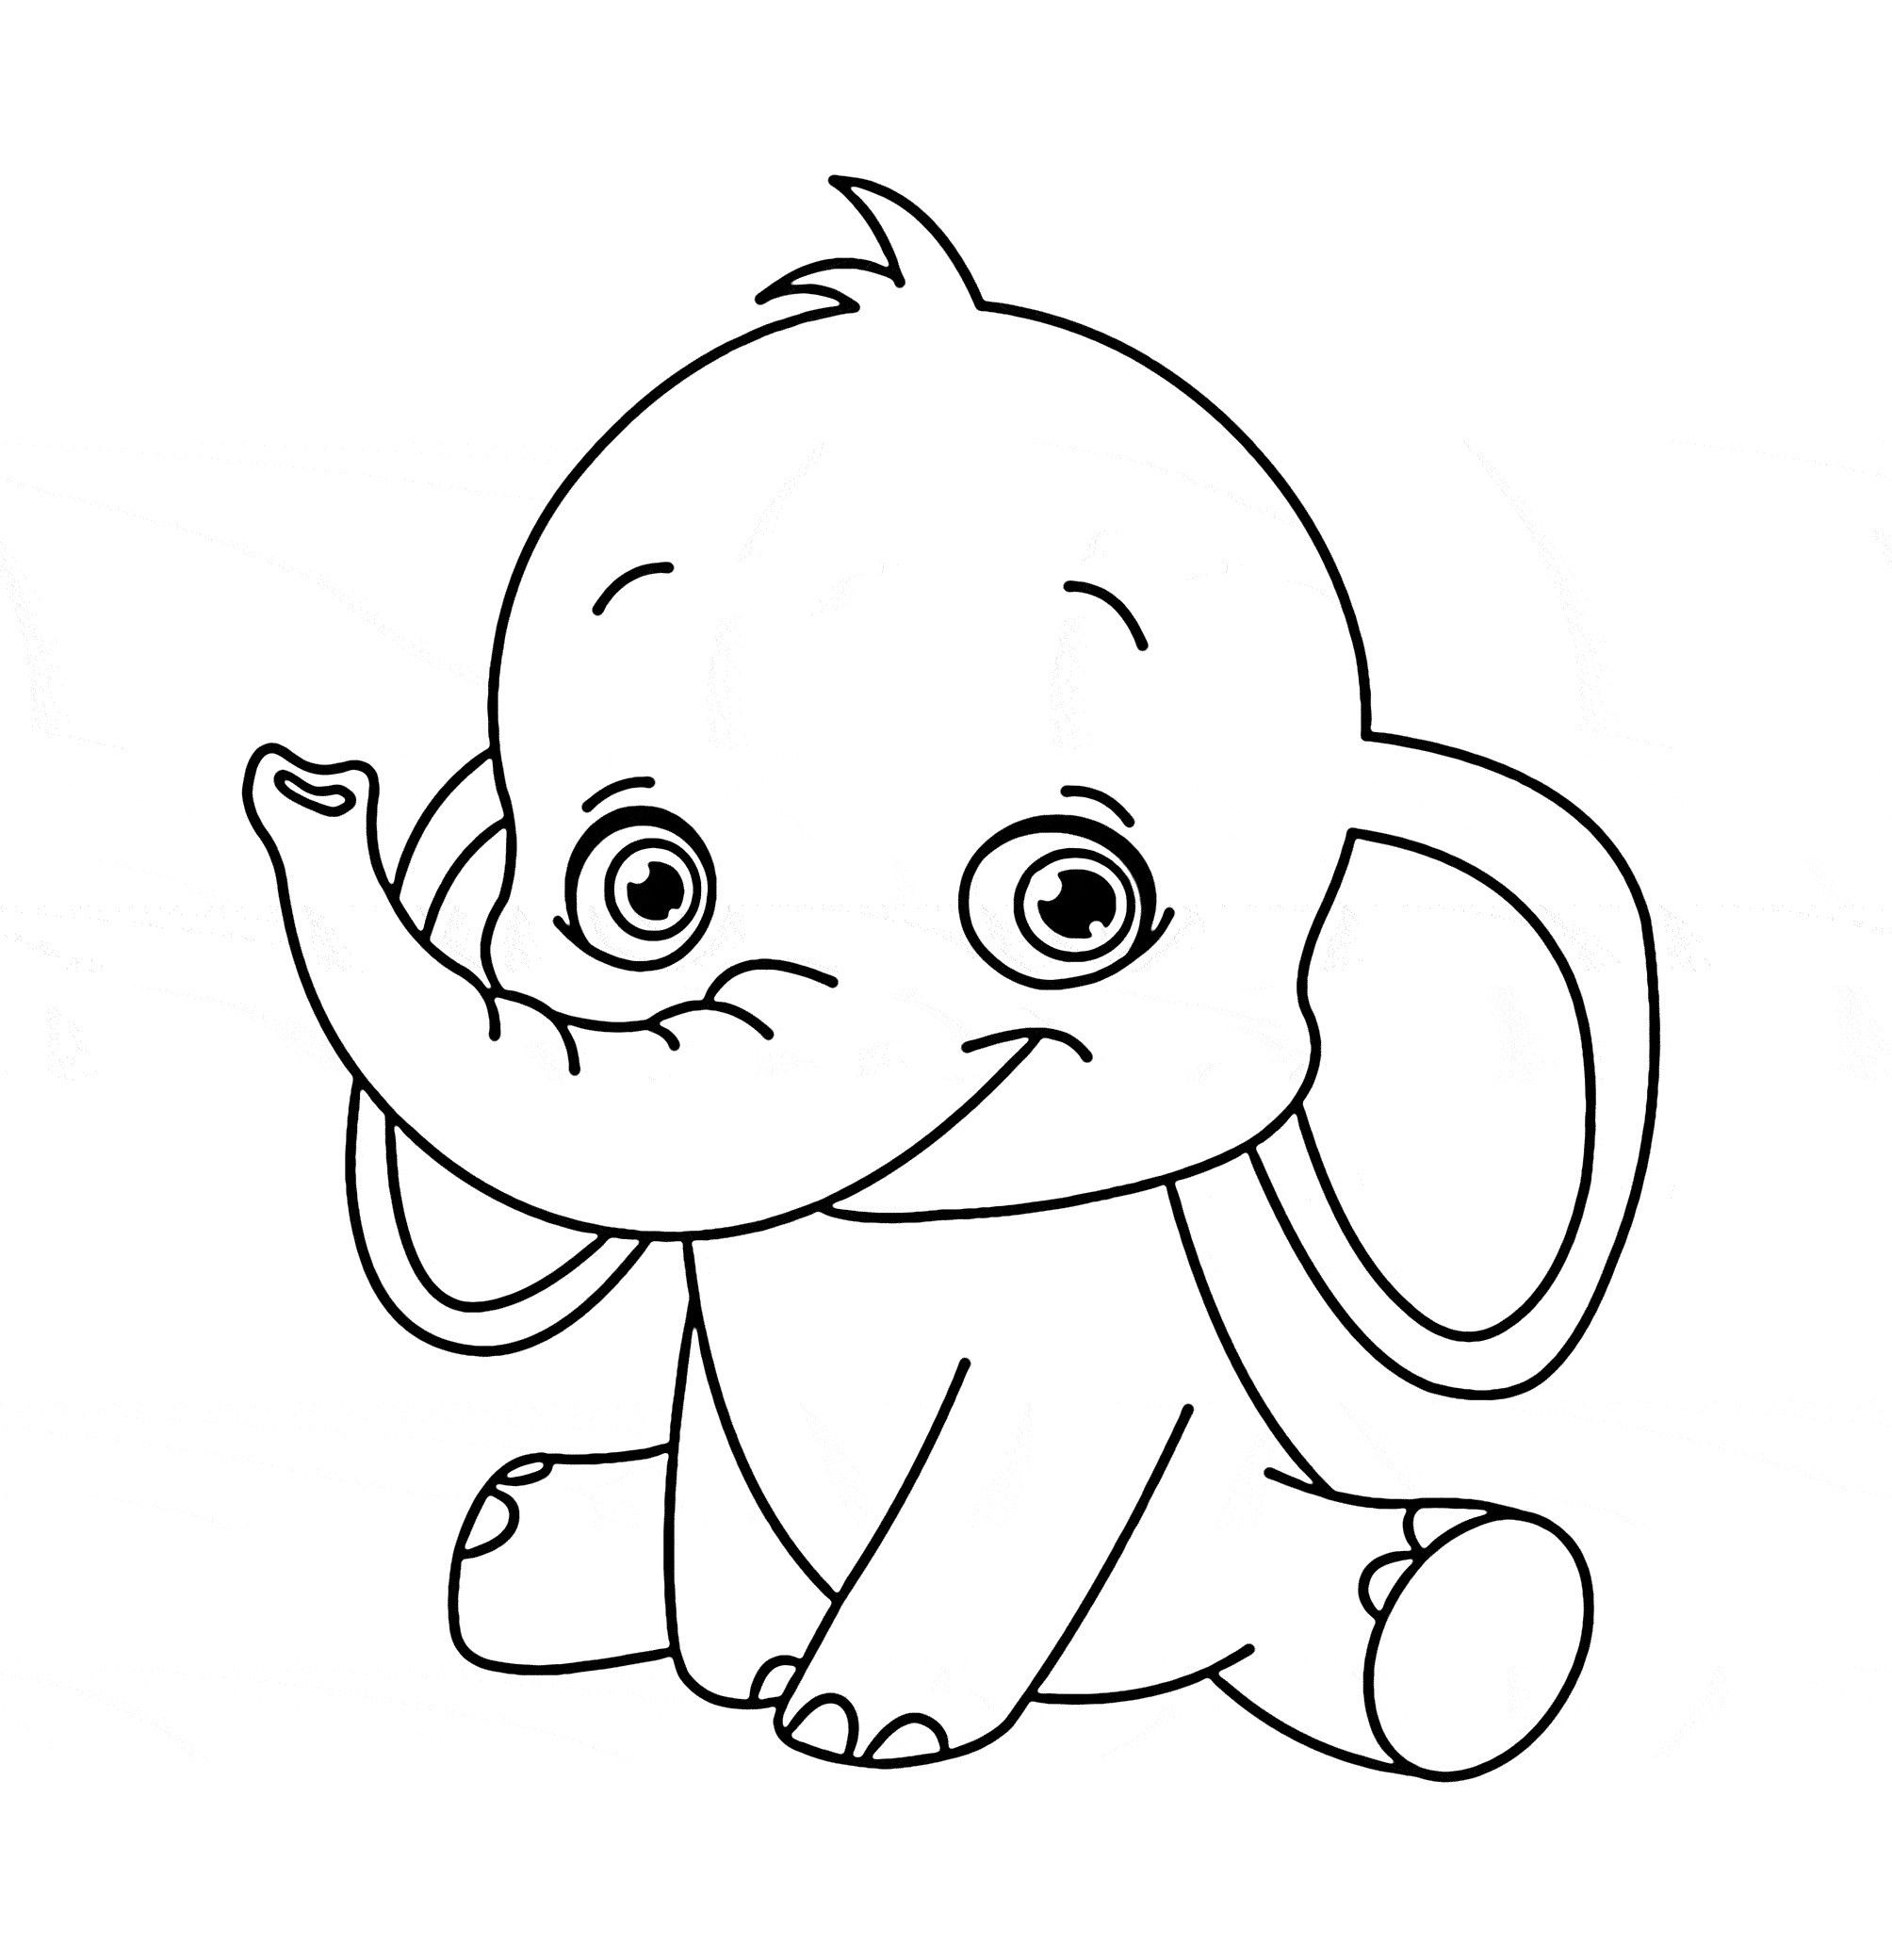 Cute Baby Elephant Coloring Pages Through The Thousands Of Photographs On The Net Concerni Elephant Coloring Page Animal Coloring Pages Disney Coloring Pages